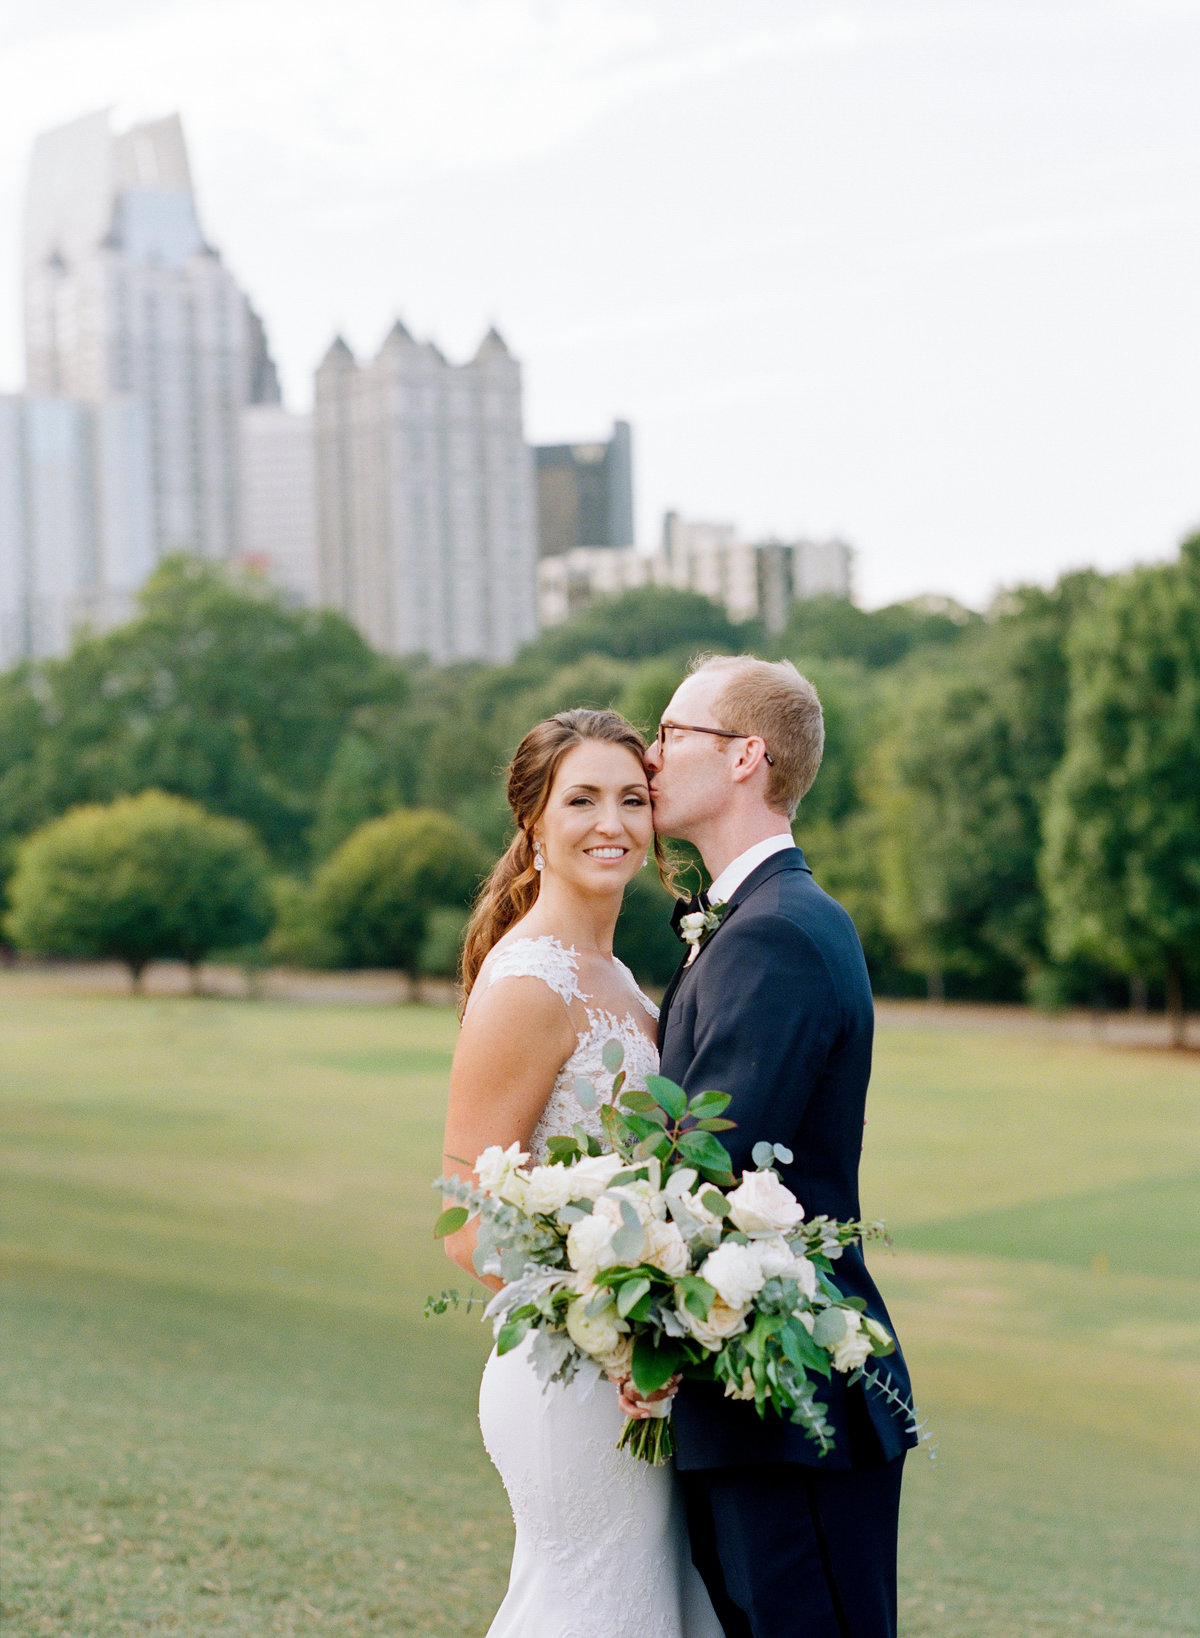 Romantic Wedding Piedmont Park